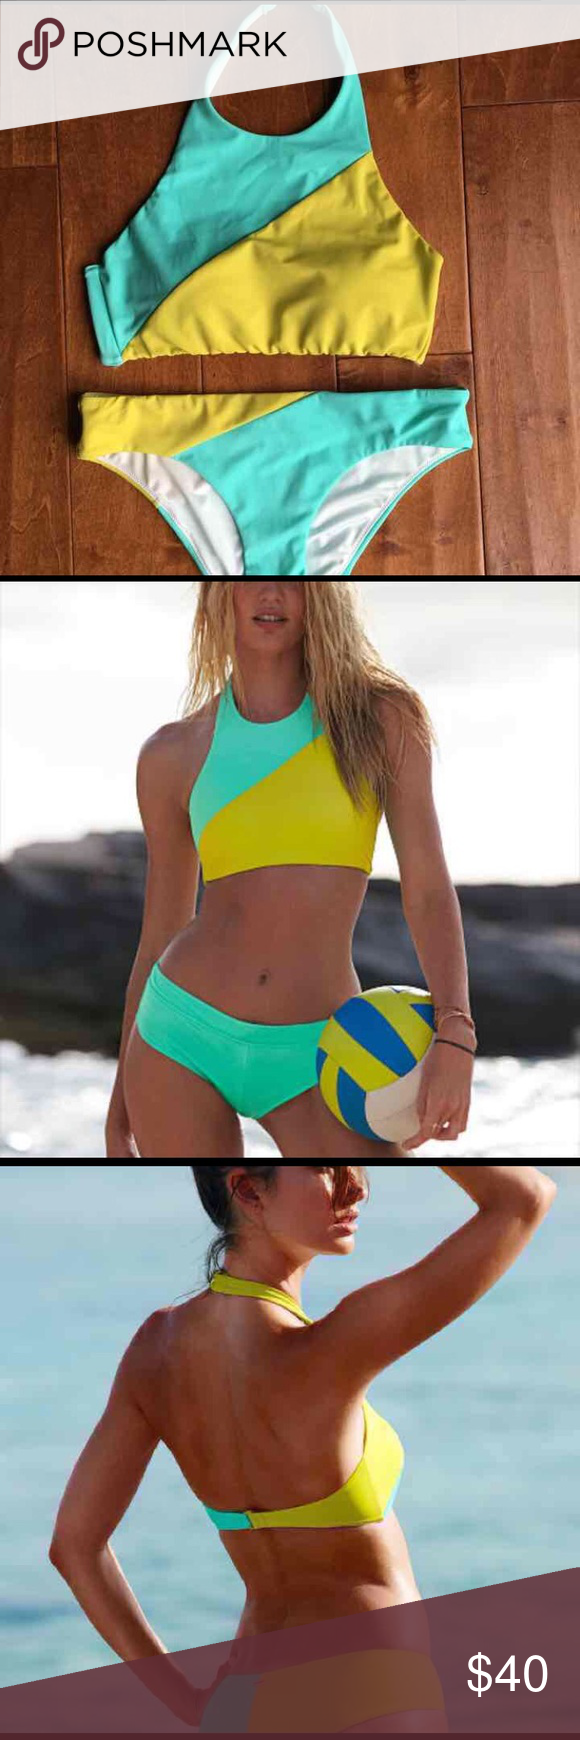 VS Colorblock Highneck bikini set!! SUPER CUTE. I've worn it one time. The Highneck is so trendy and received so many compliments :-) Victoria's Secret Swim Bikinis